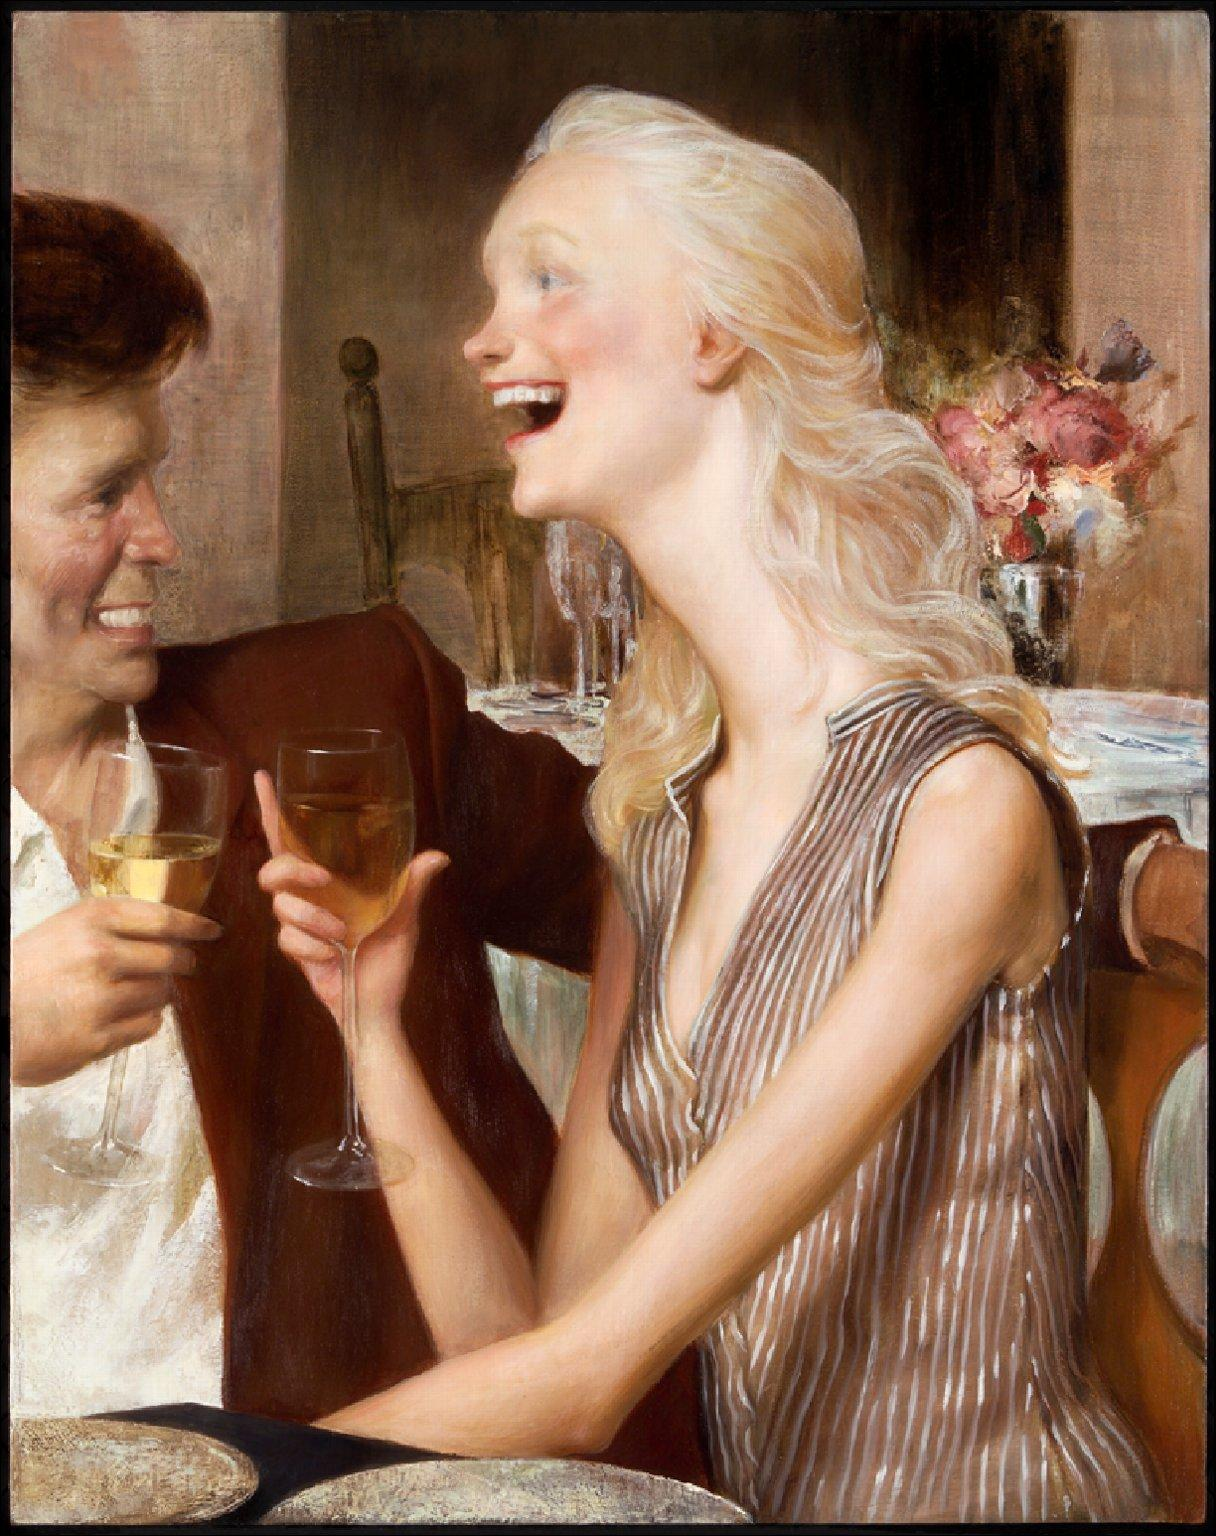 John Currin Tutt'Art@ (17).jpg